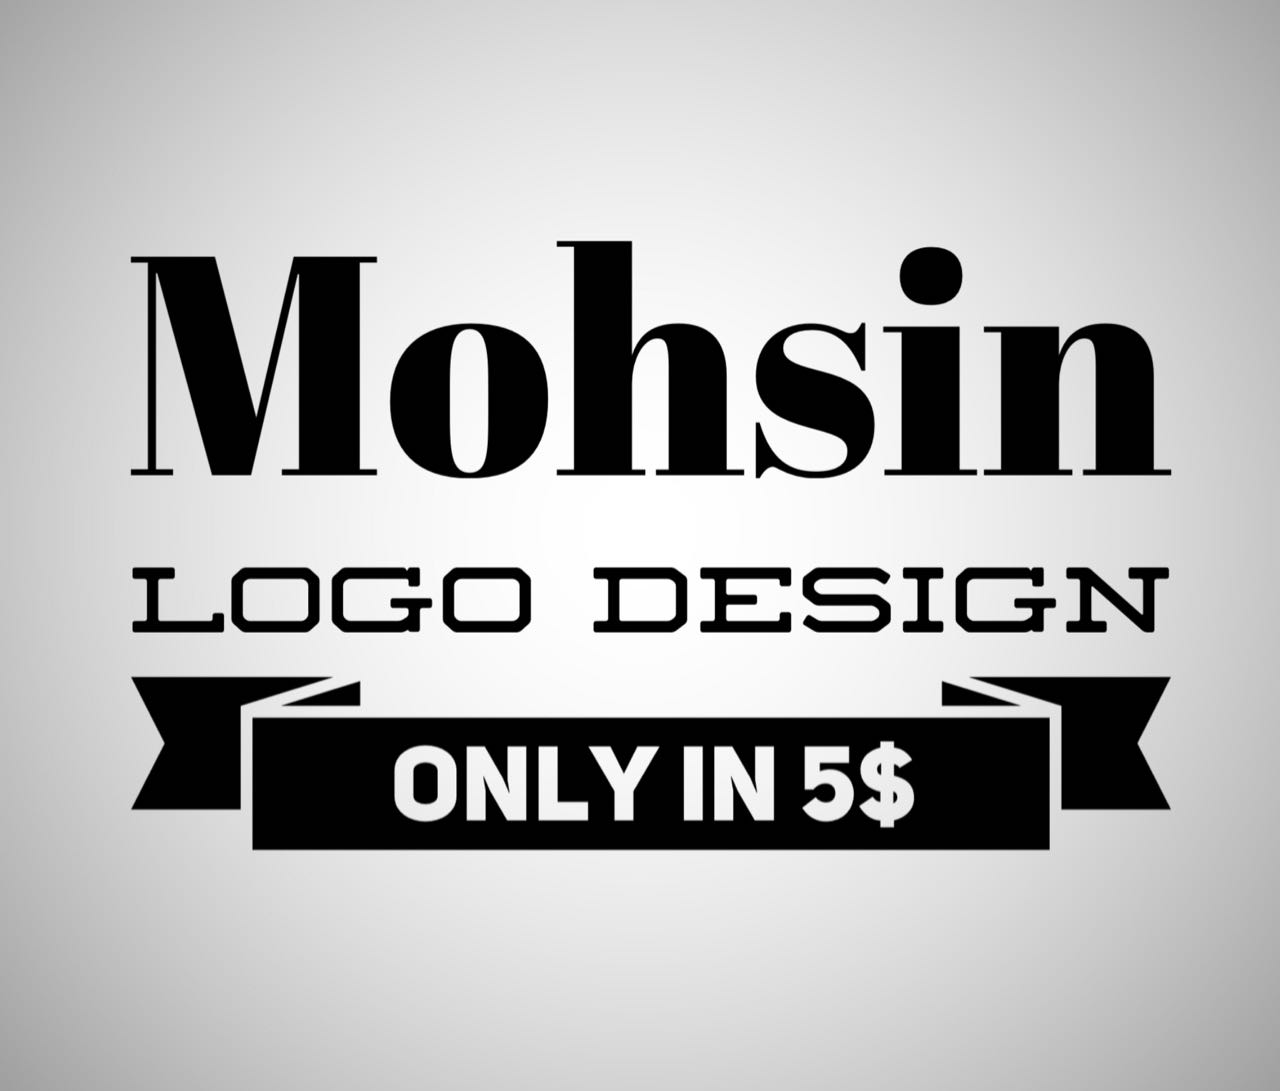 Design Logo For Any One With Premier Quality